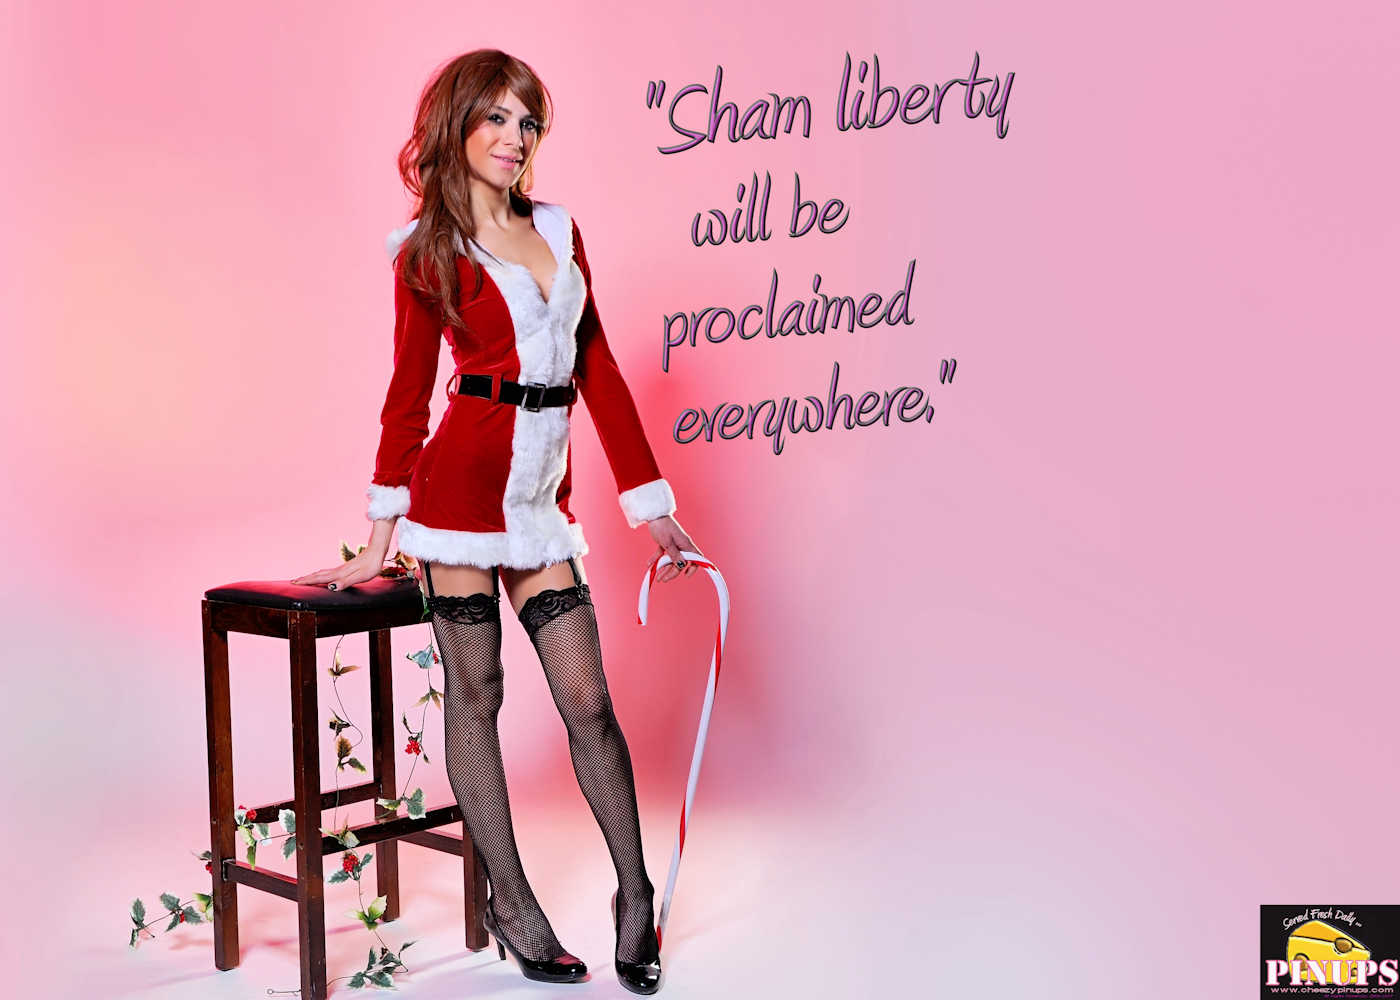 "Cheezy Pinup - December 14, 2017   ""Sham liberty will be proclaimed everywhere."" - Nostradamus Model: Laura"